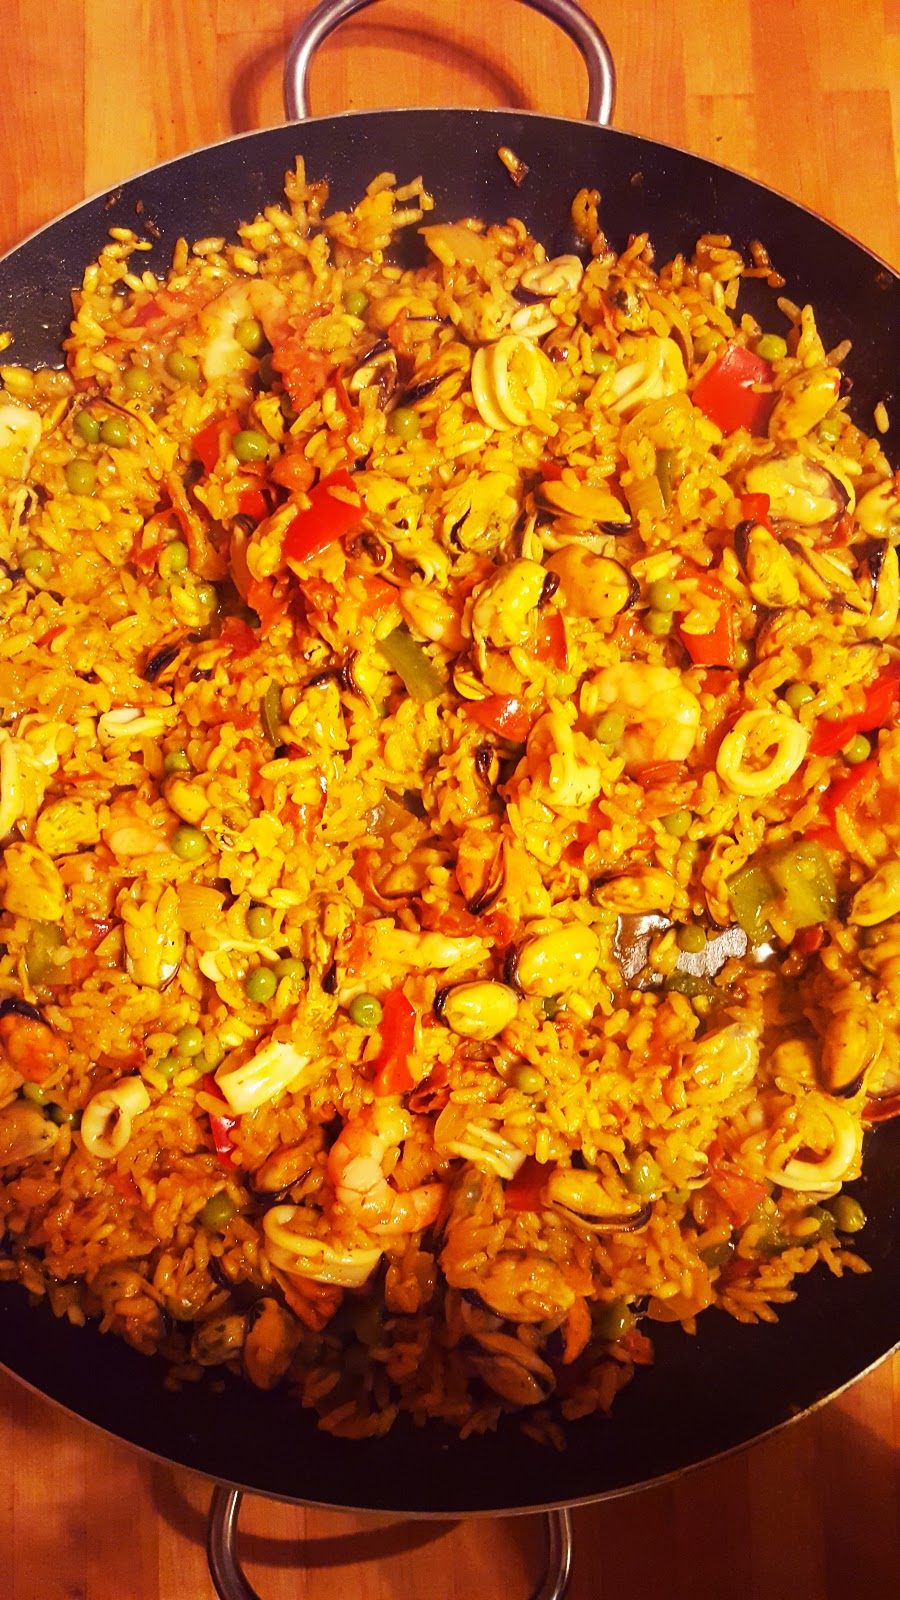 Spicy Seafood Paella: My Husbands Favourite Dish